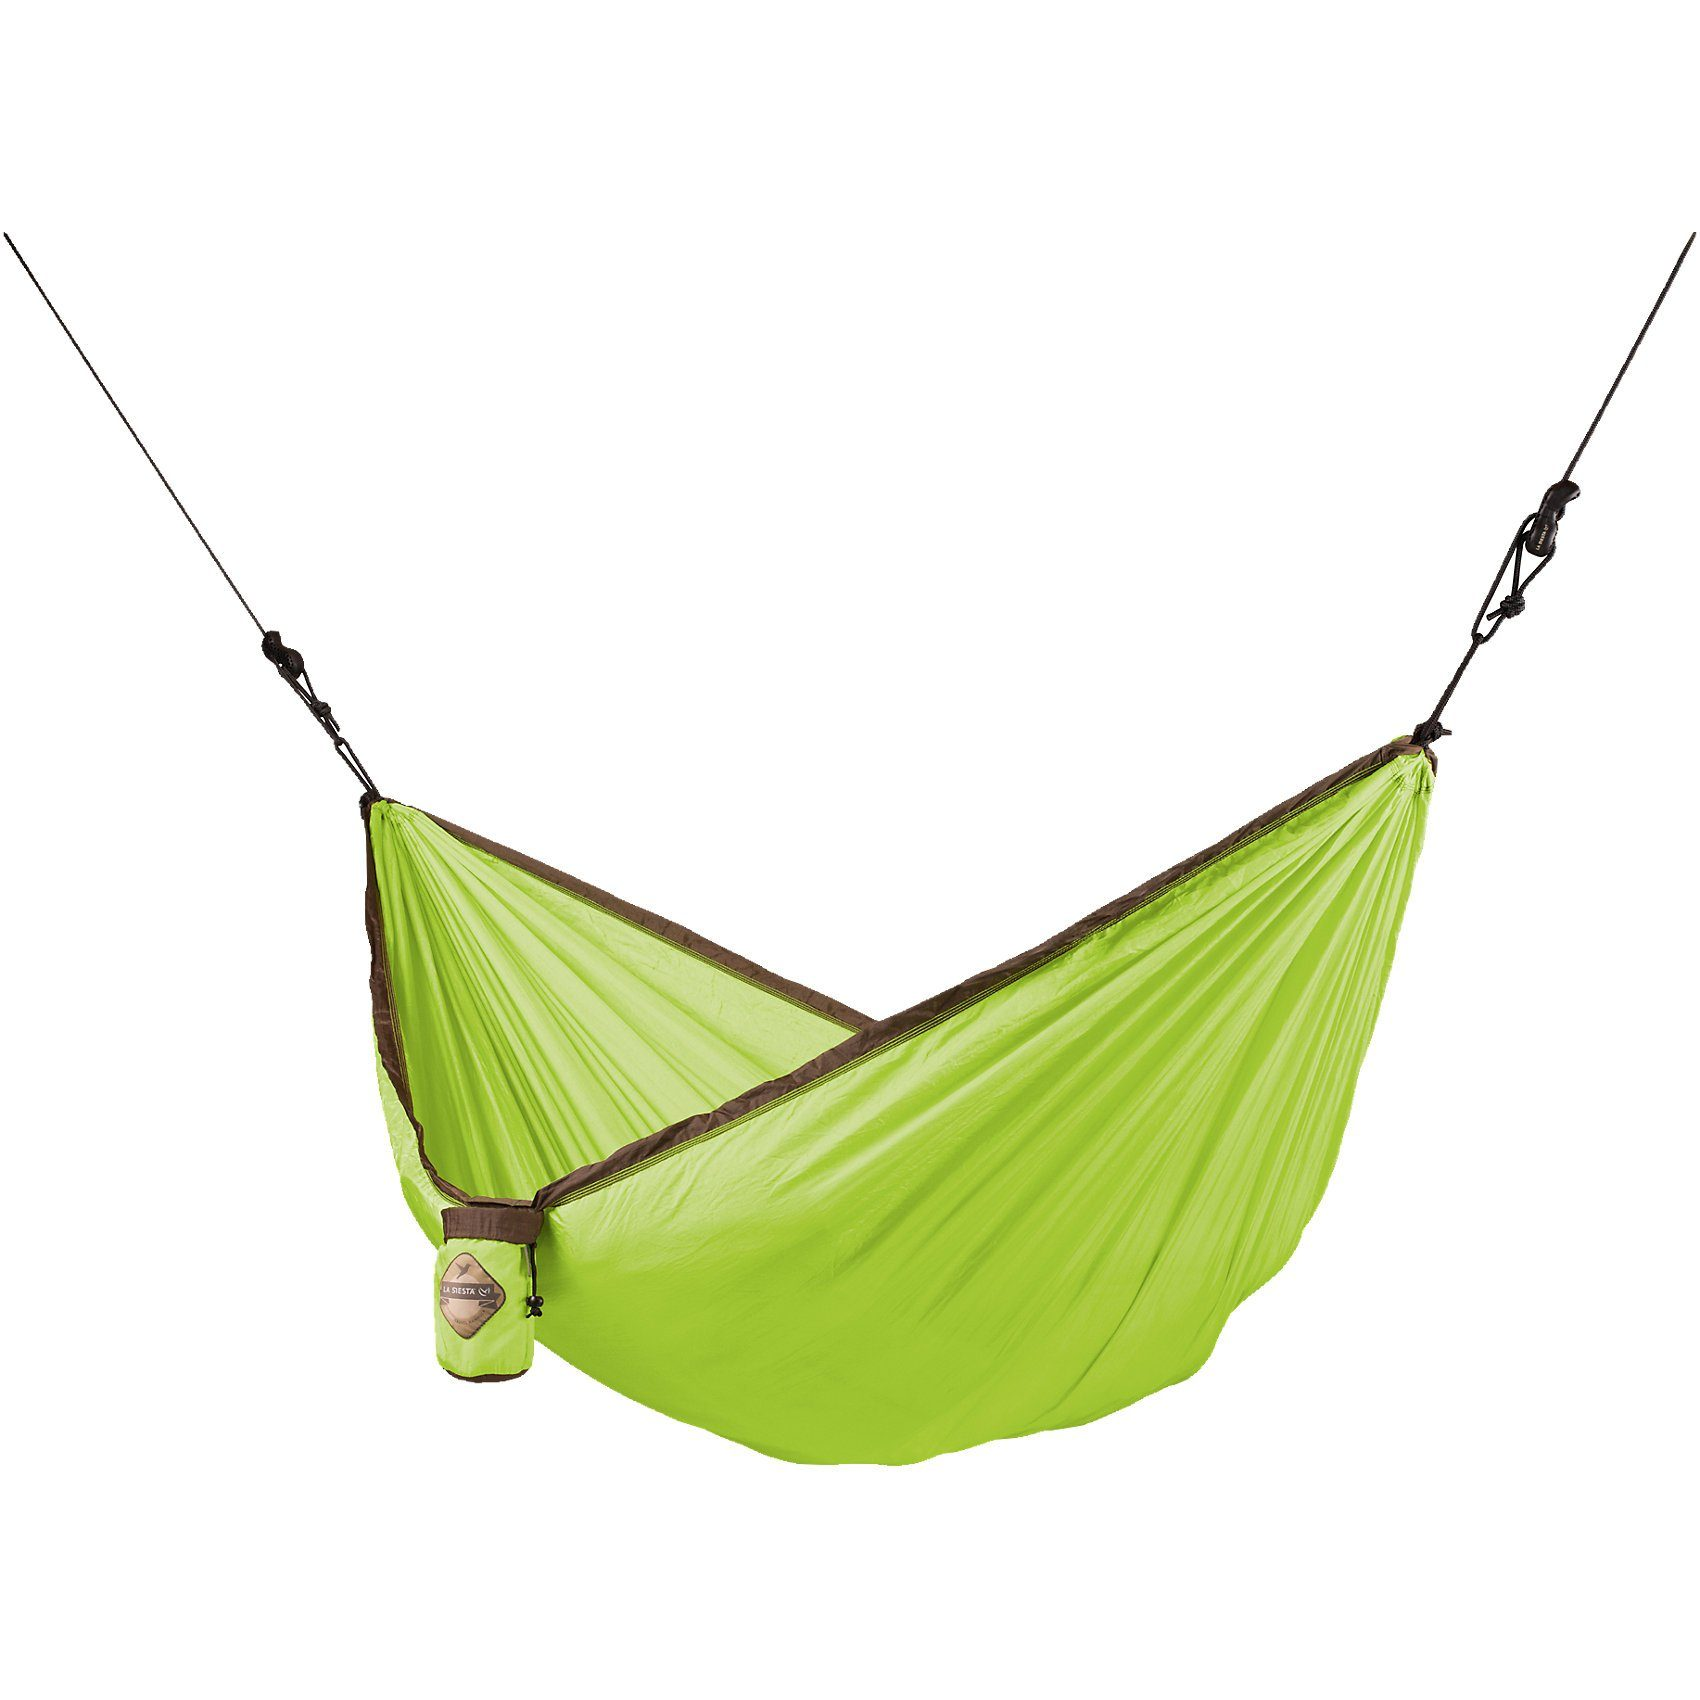 La Siesta Single-Reisehängematte COLIBRI green